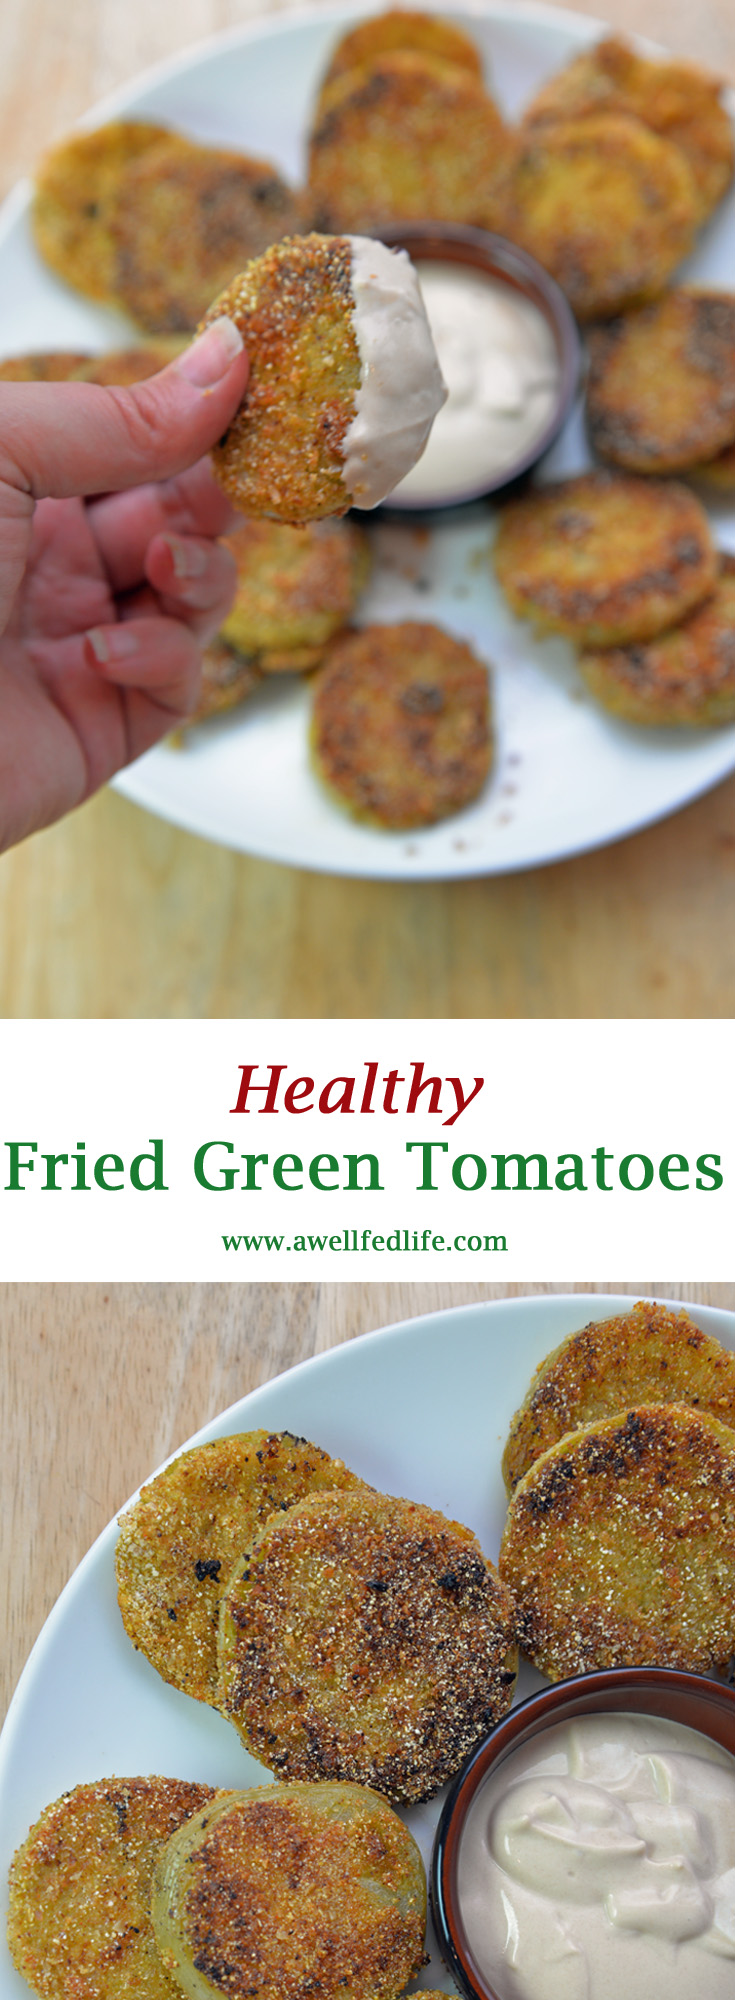 Fried Green Tomatoes and Dijon Dipping Sauce Pinterest